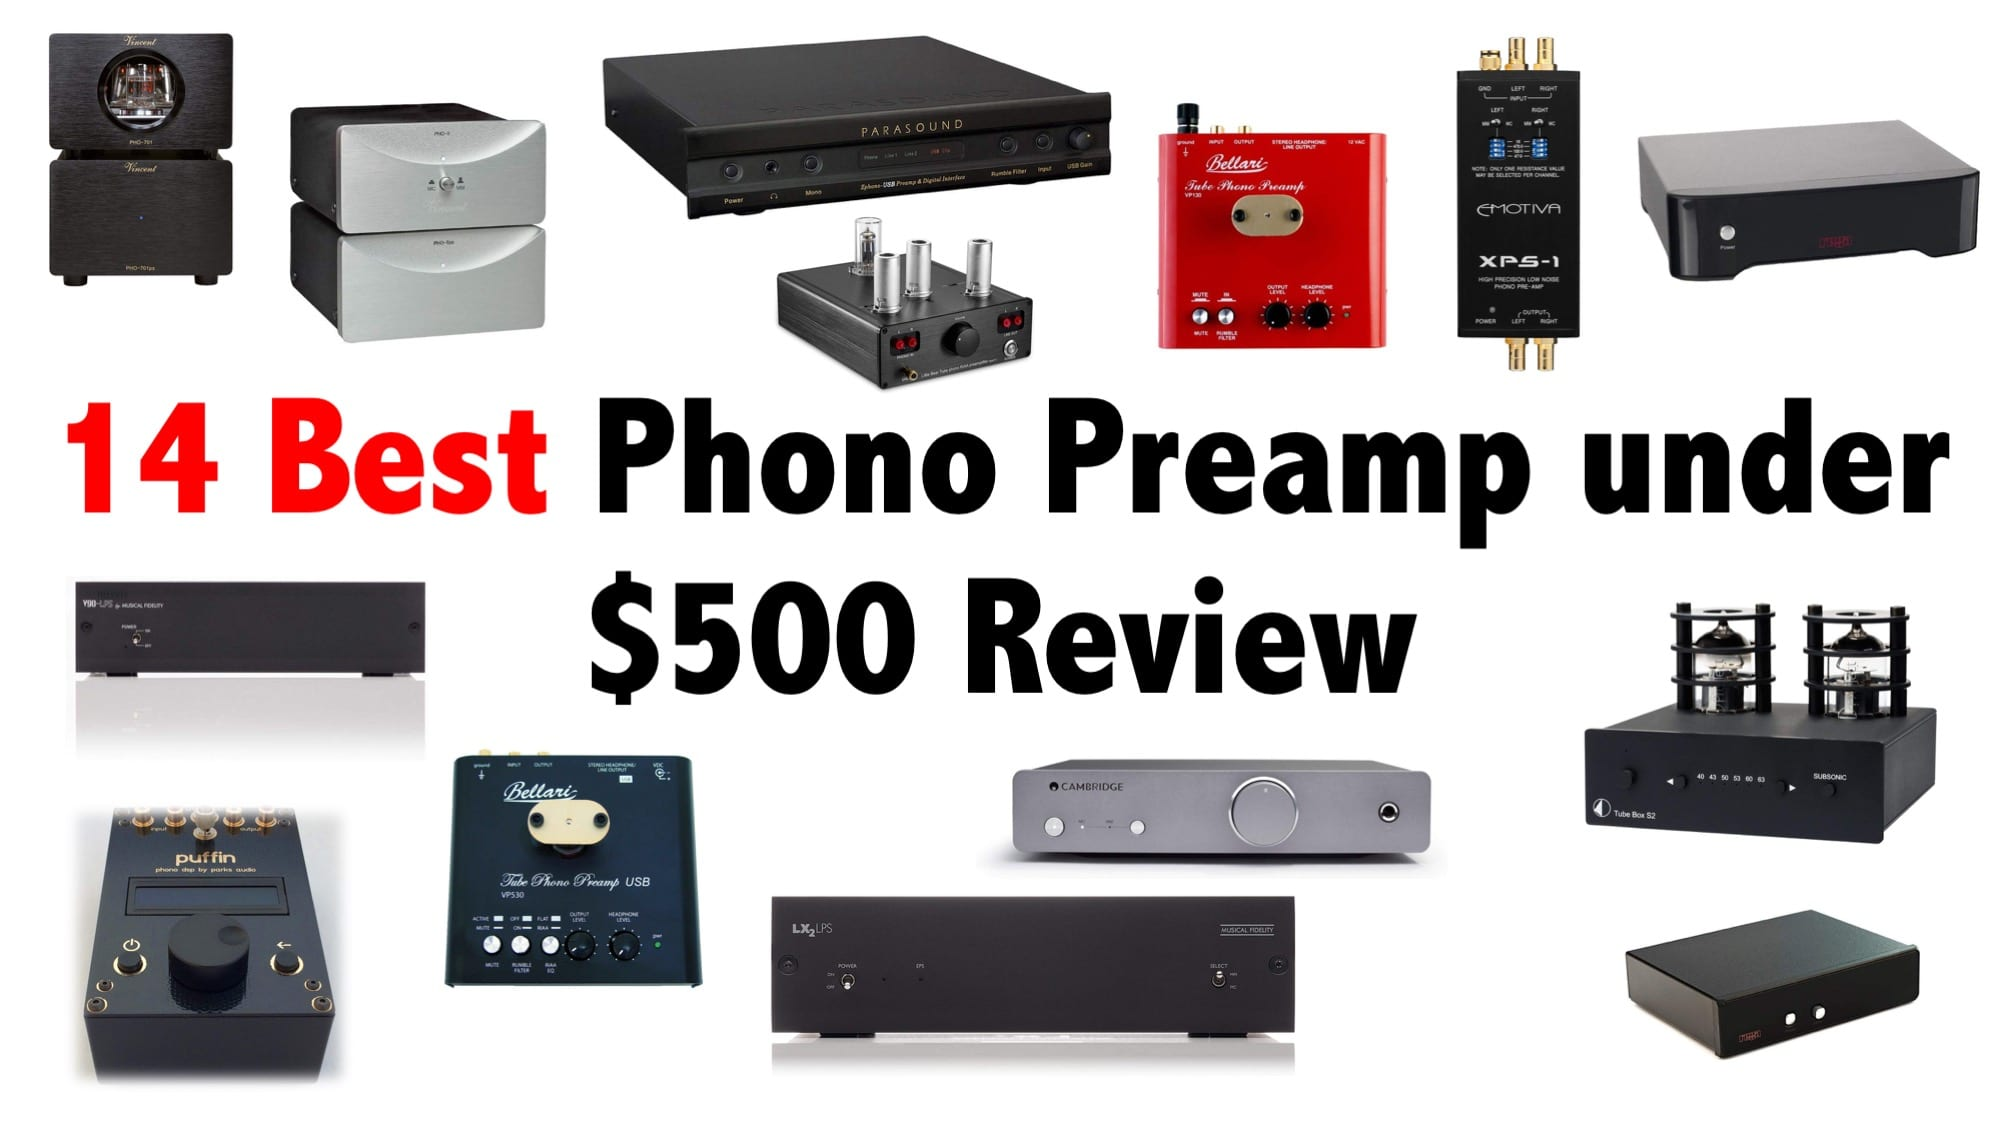 14 Best Phono Preamp under $500 Review